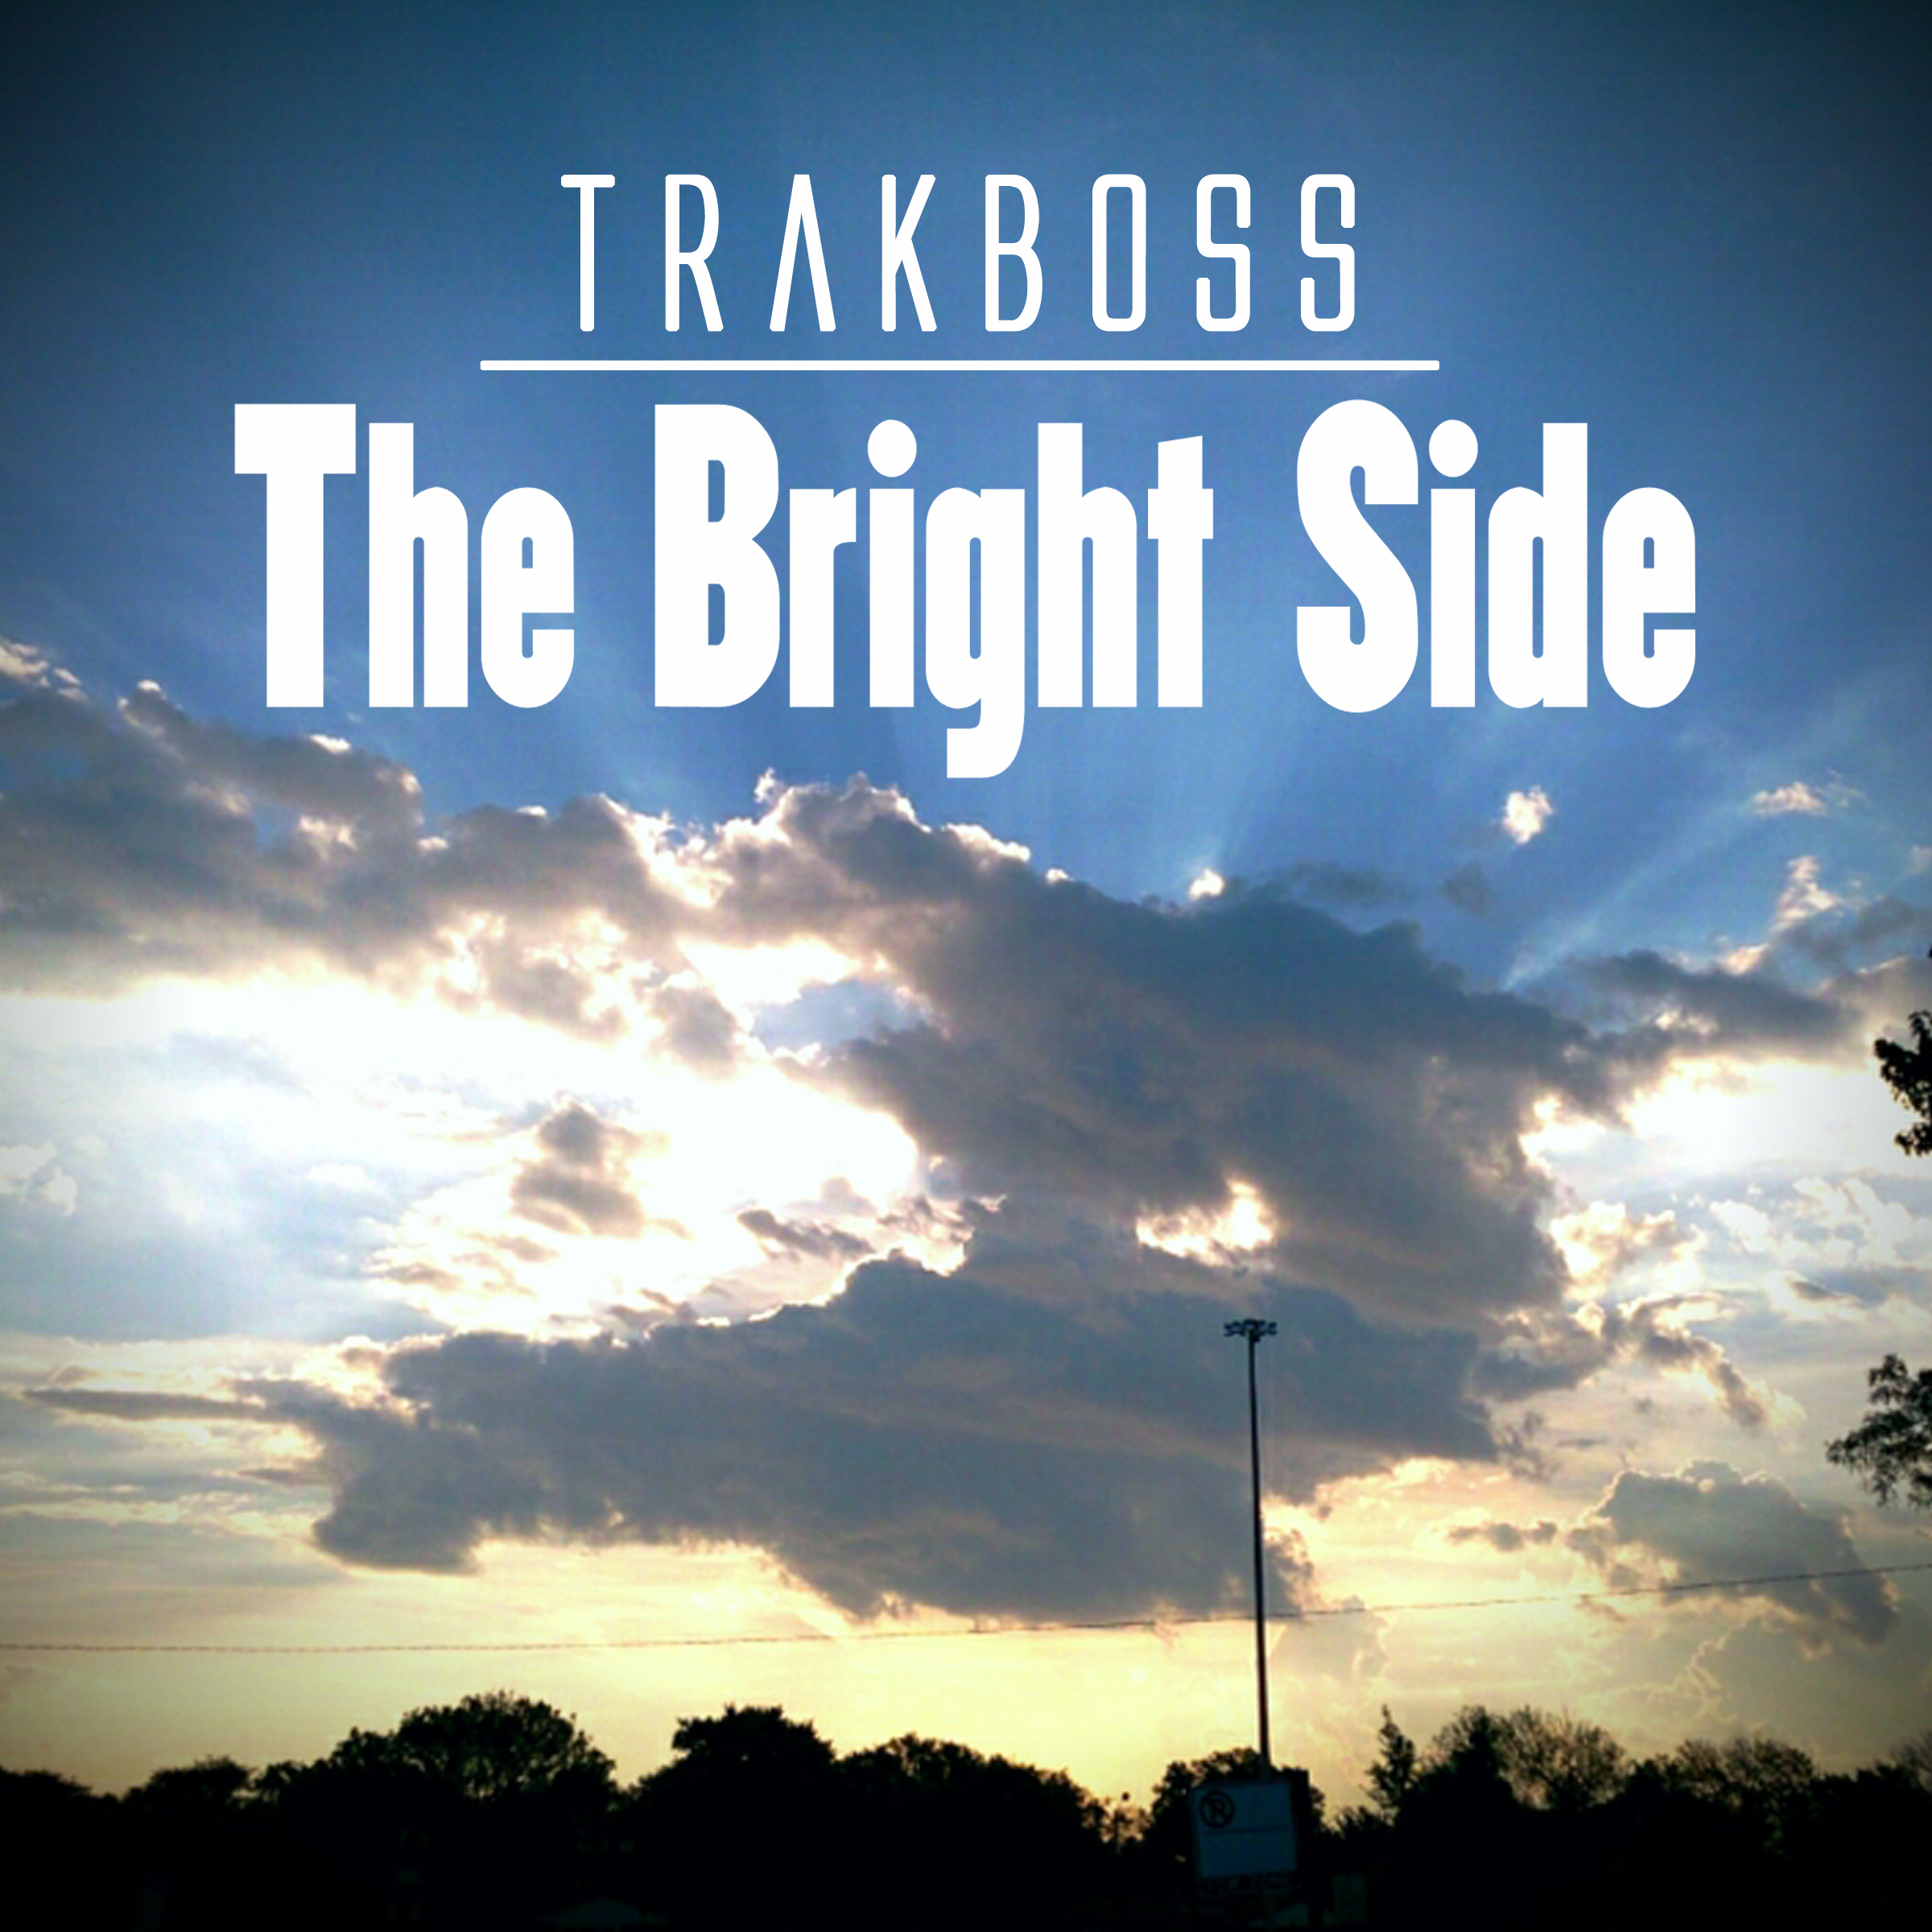 TrakBoss – The Bright Side